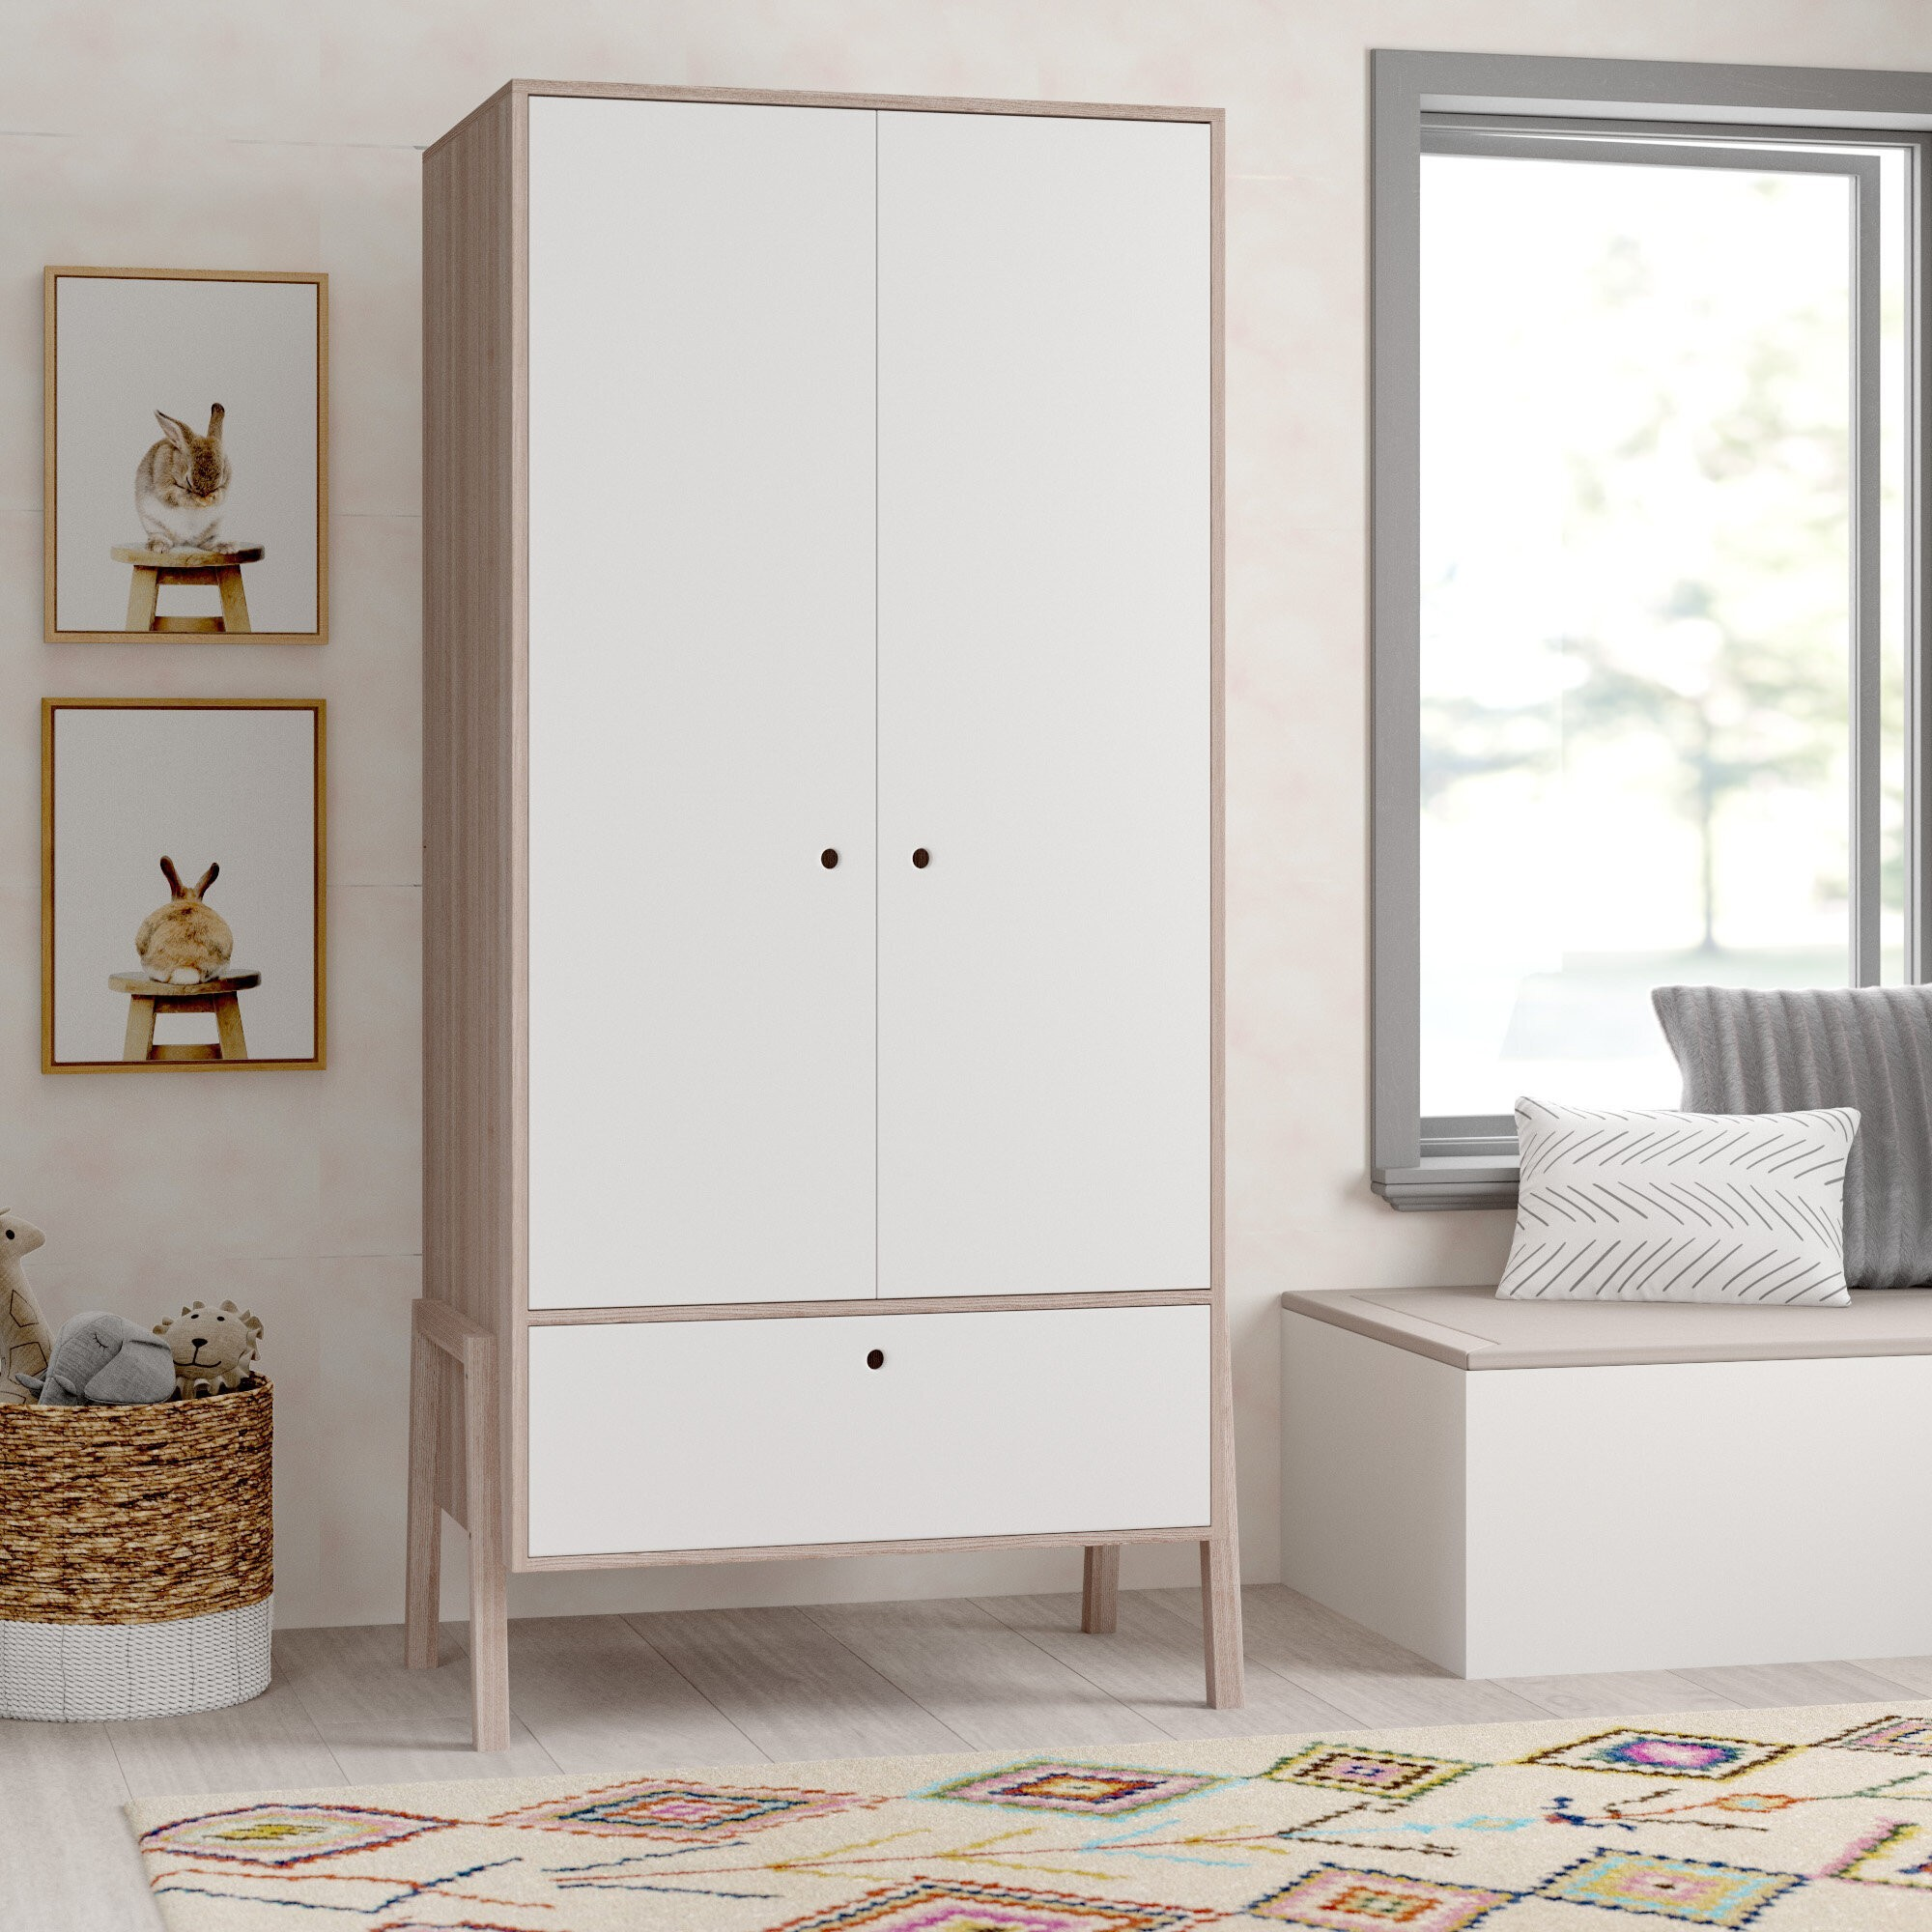 How To Choose A Kids Armoire